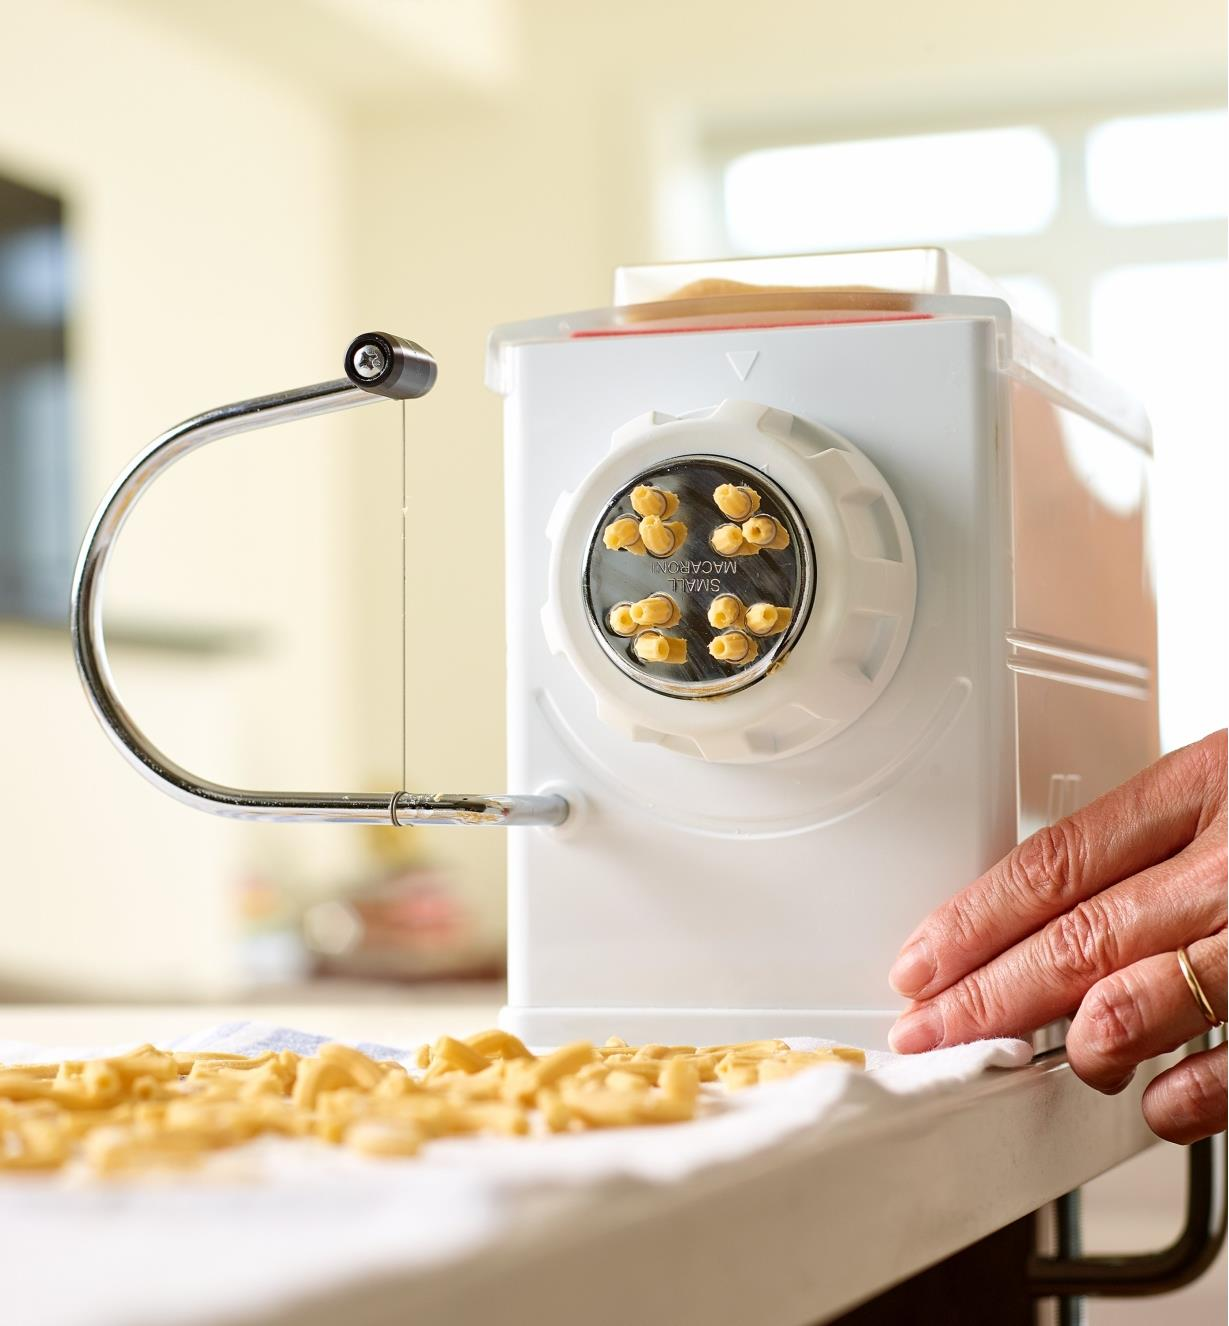 Fresh macaroni noodles being made with the Marcato pasta extruder